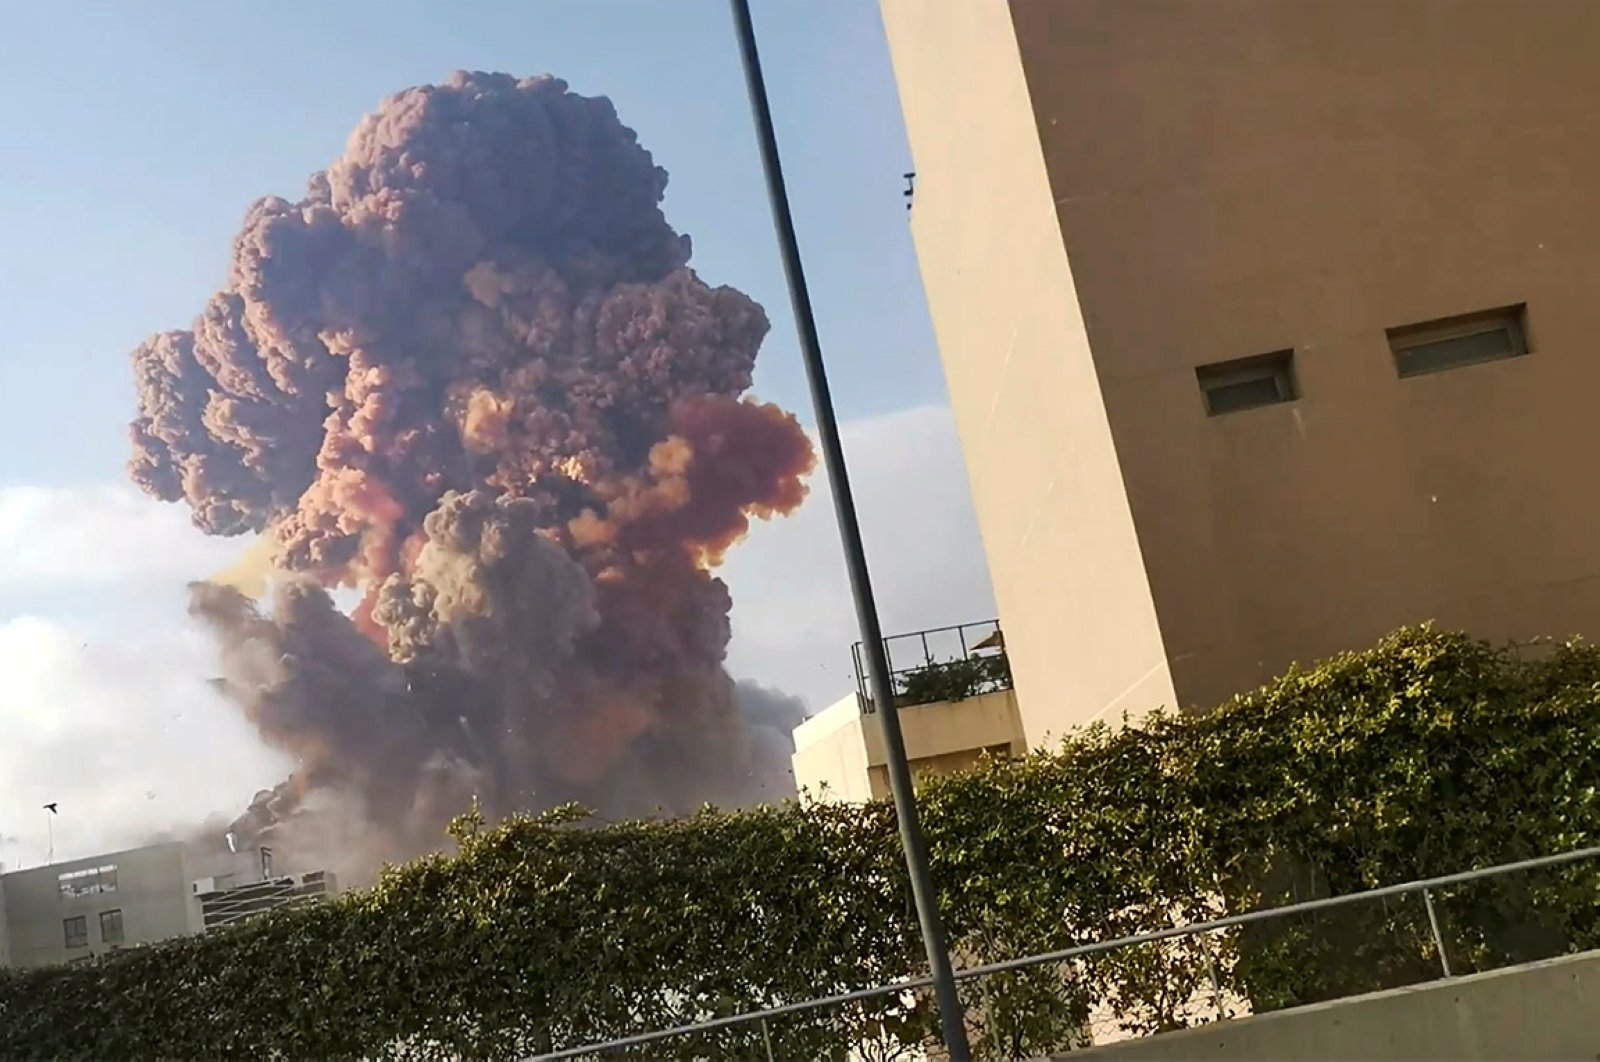 Smoke rises after an explosion in Beirut, Lebanon Aug. 4, 2020, in this picture obtained from a social media video. (Reuters Photo)